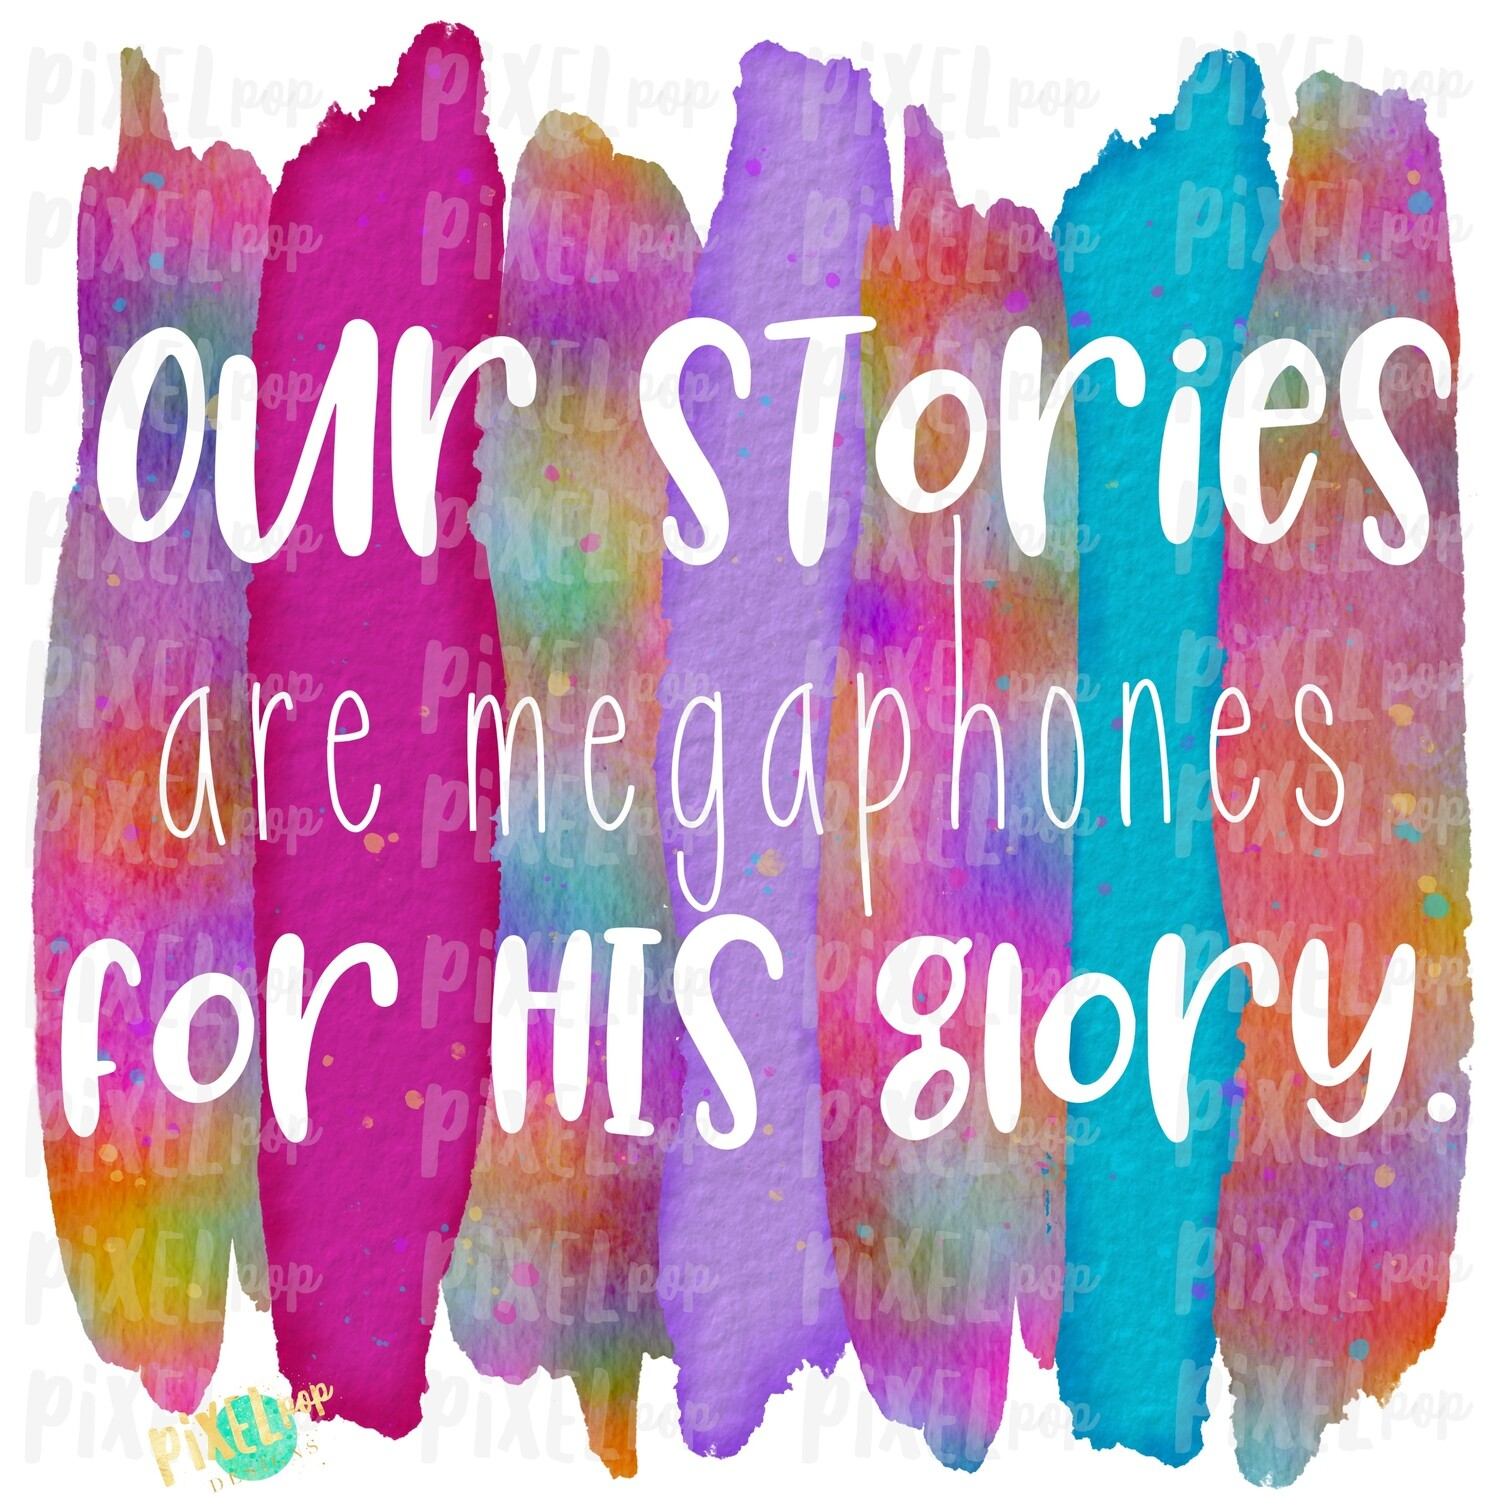 "Our Stories are Megaphones for HIS Glory Tie Dye ""Cut Out"" Watercolor Brush Stroke Background Sublimation PNG 